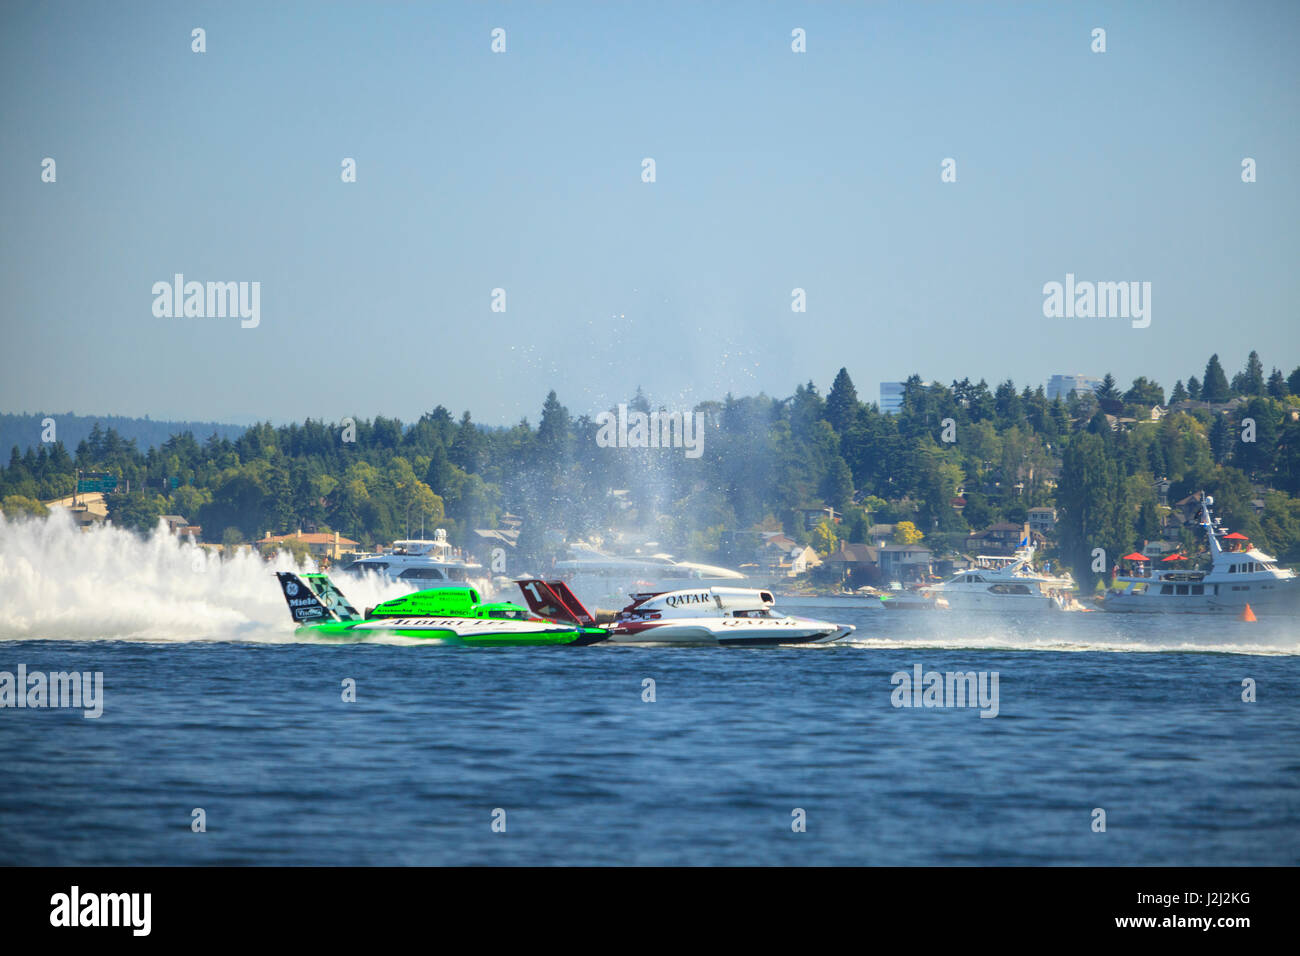 H1 Unlimited Class Hydroplane Racing, Lake Washington